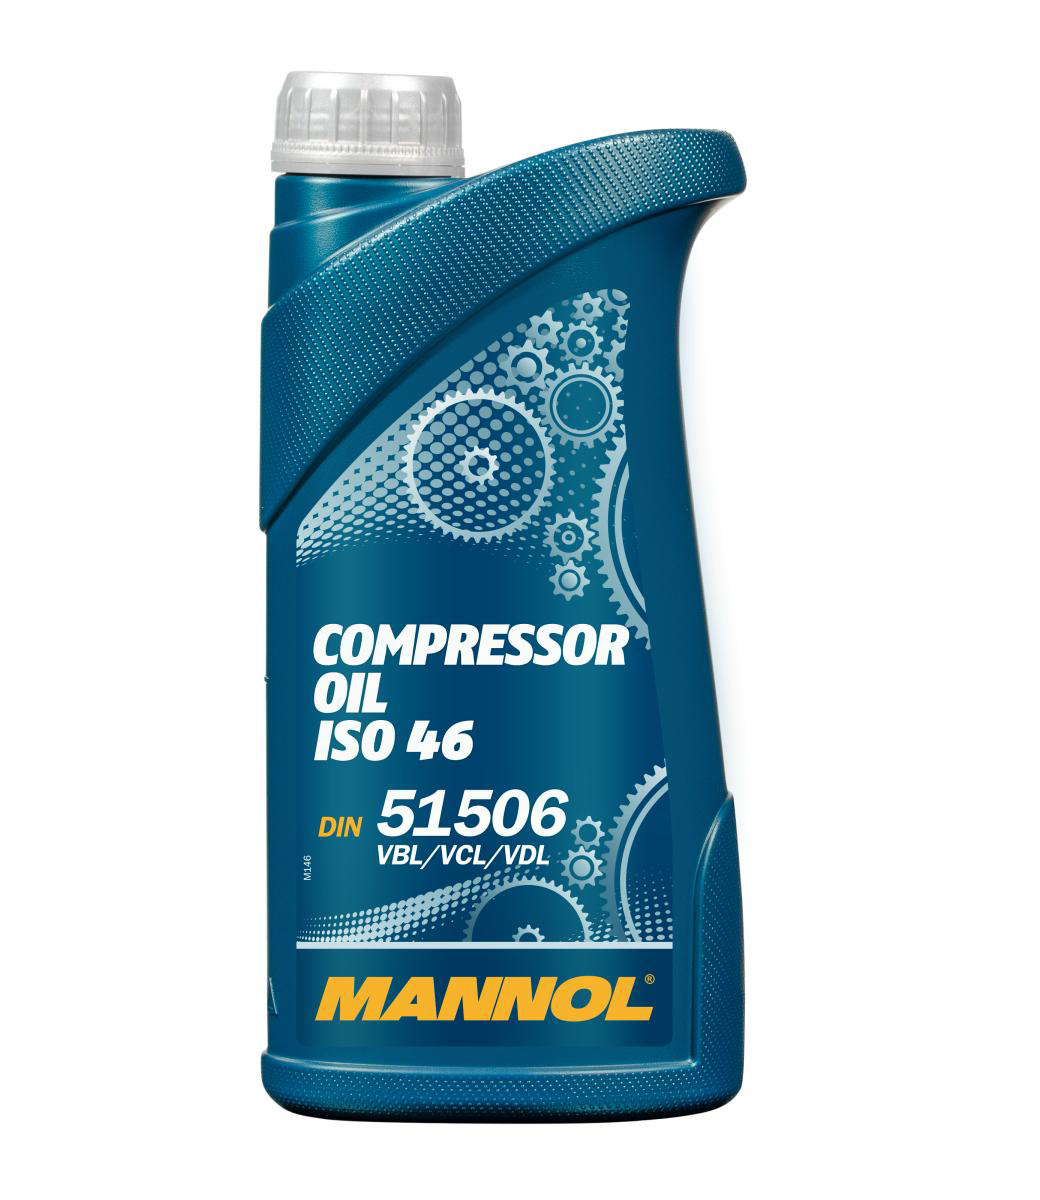 Compressor Oil ISO 46